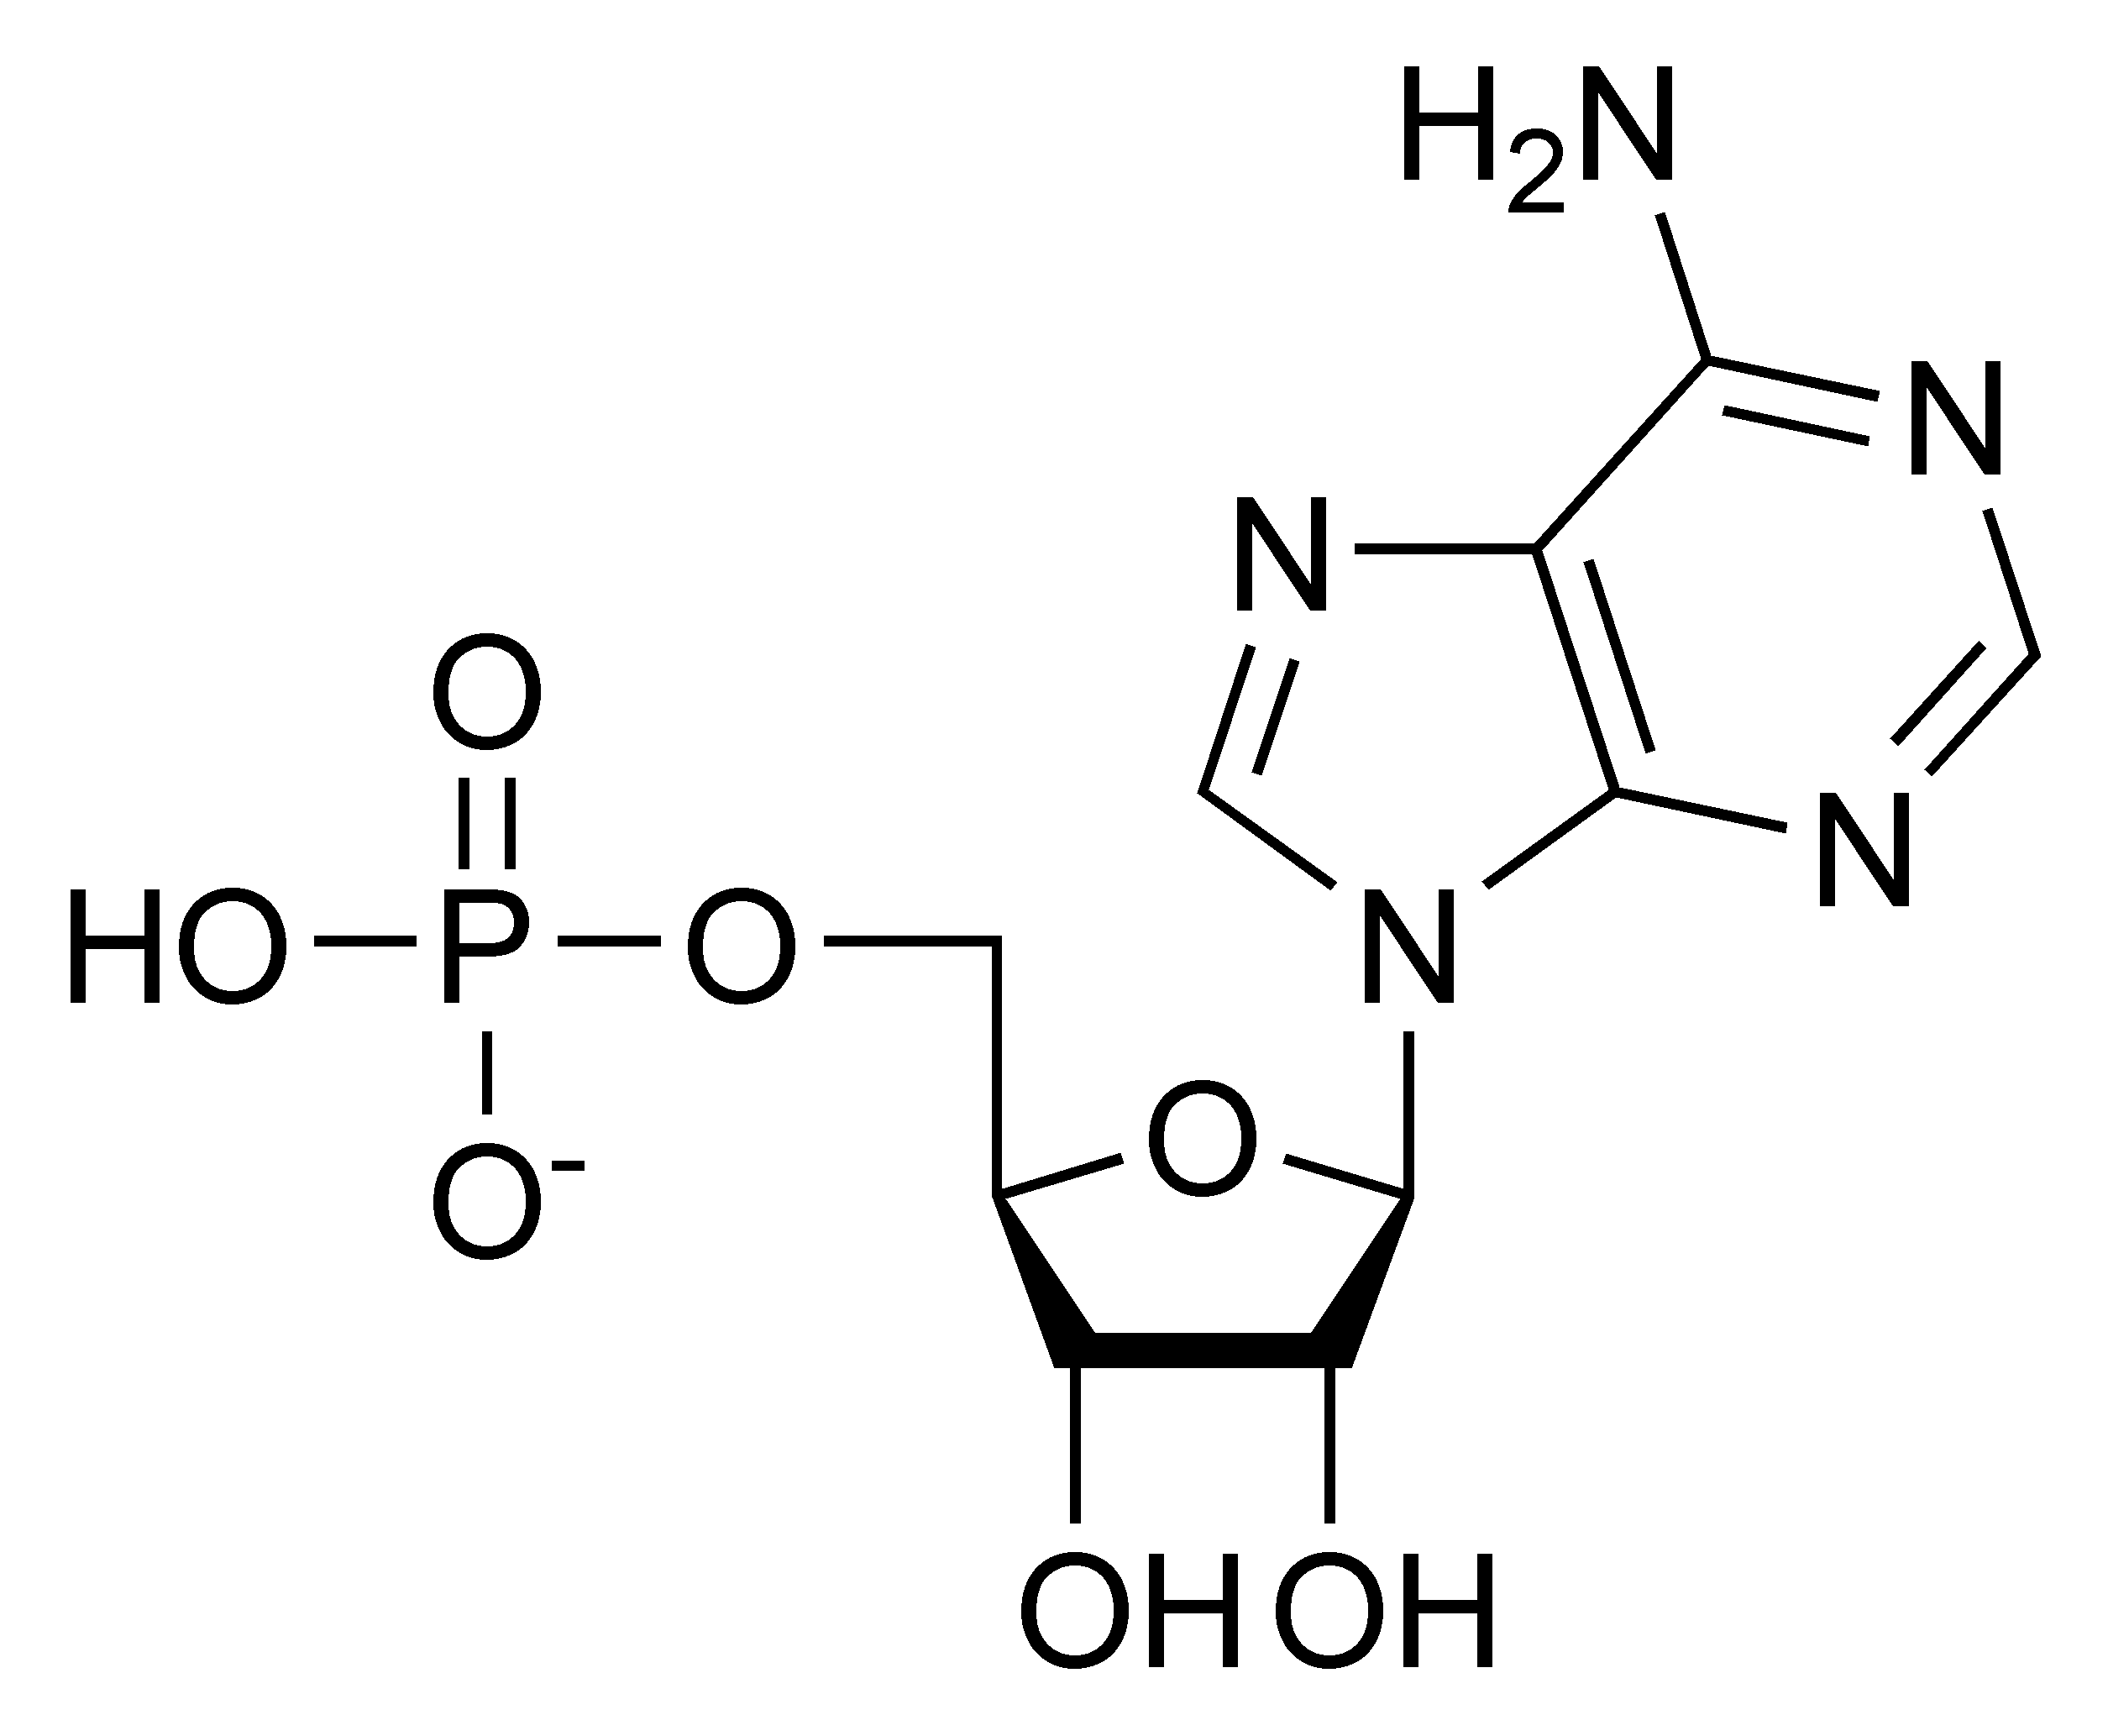 Chemical structure of adenosine monophosphate